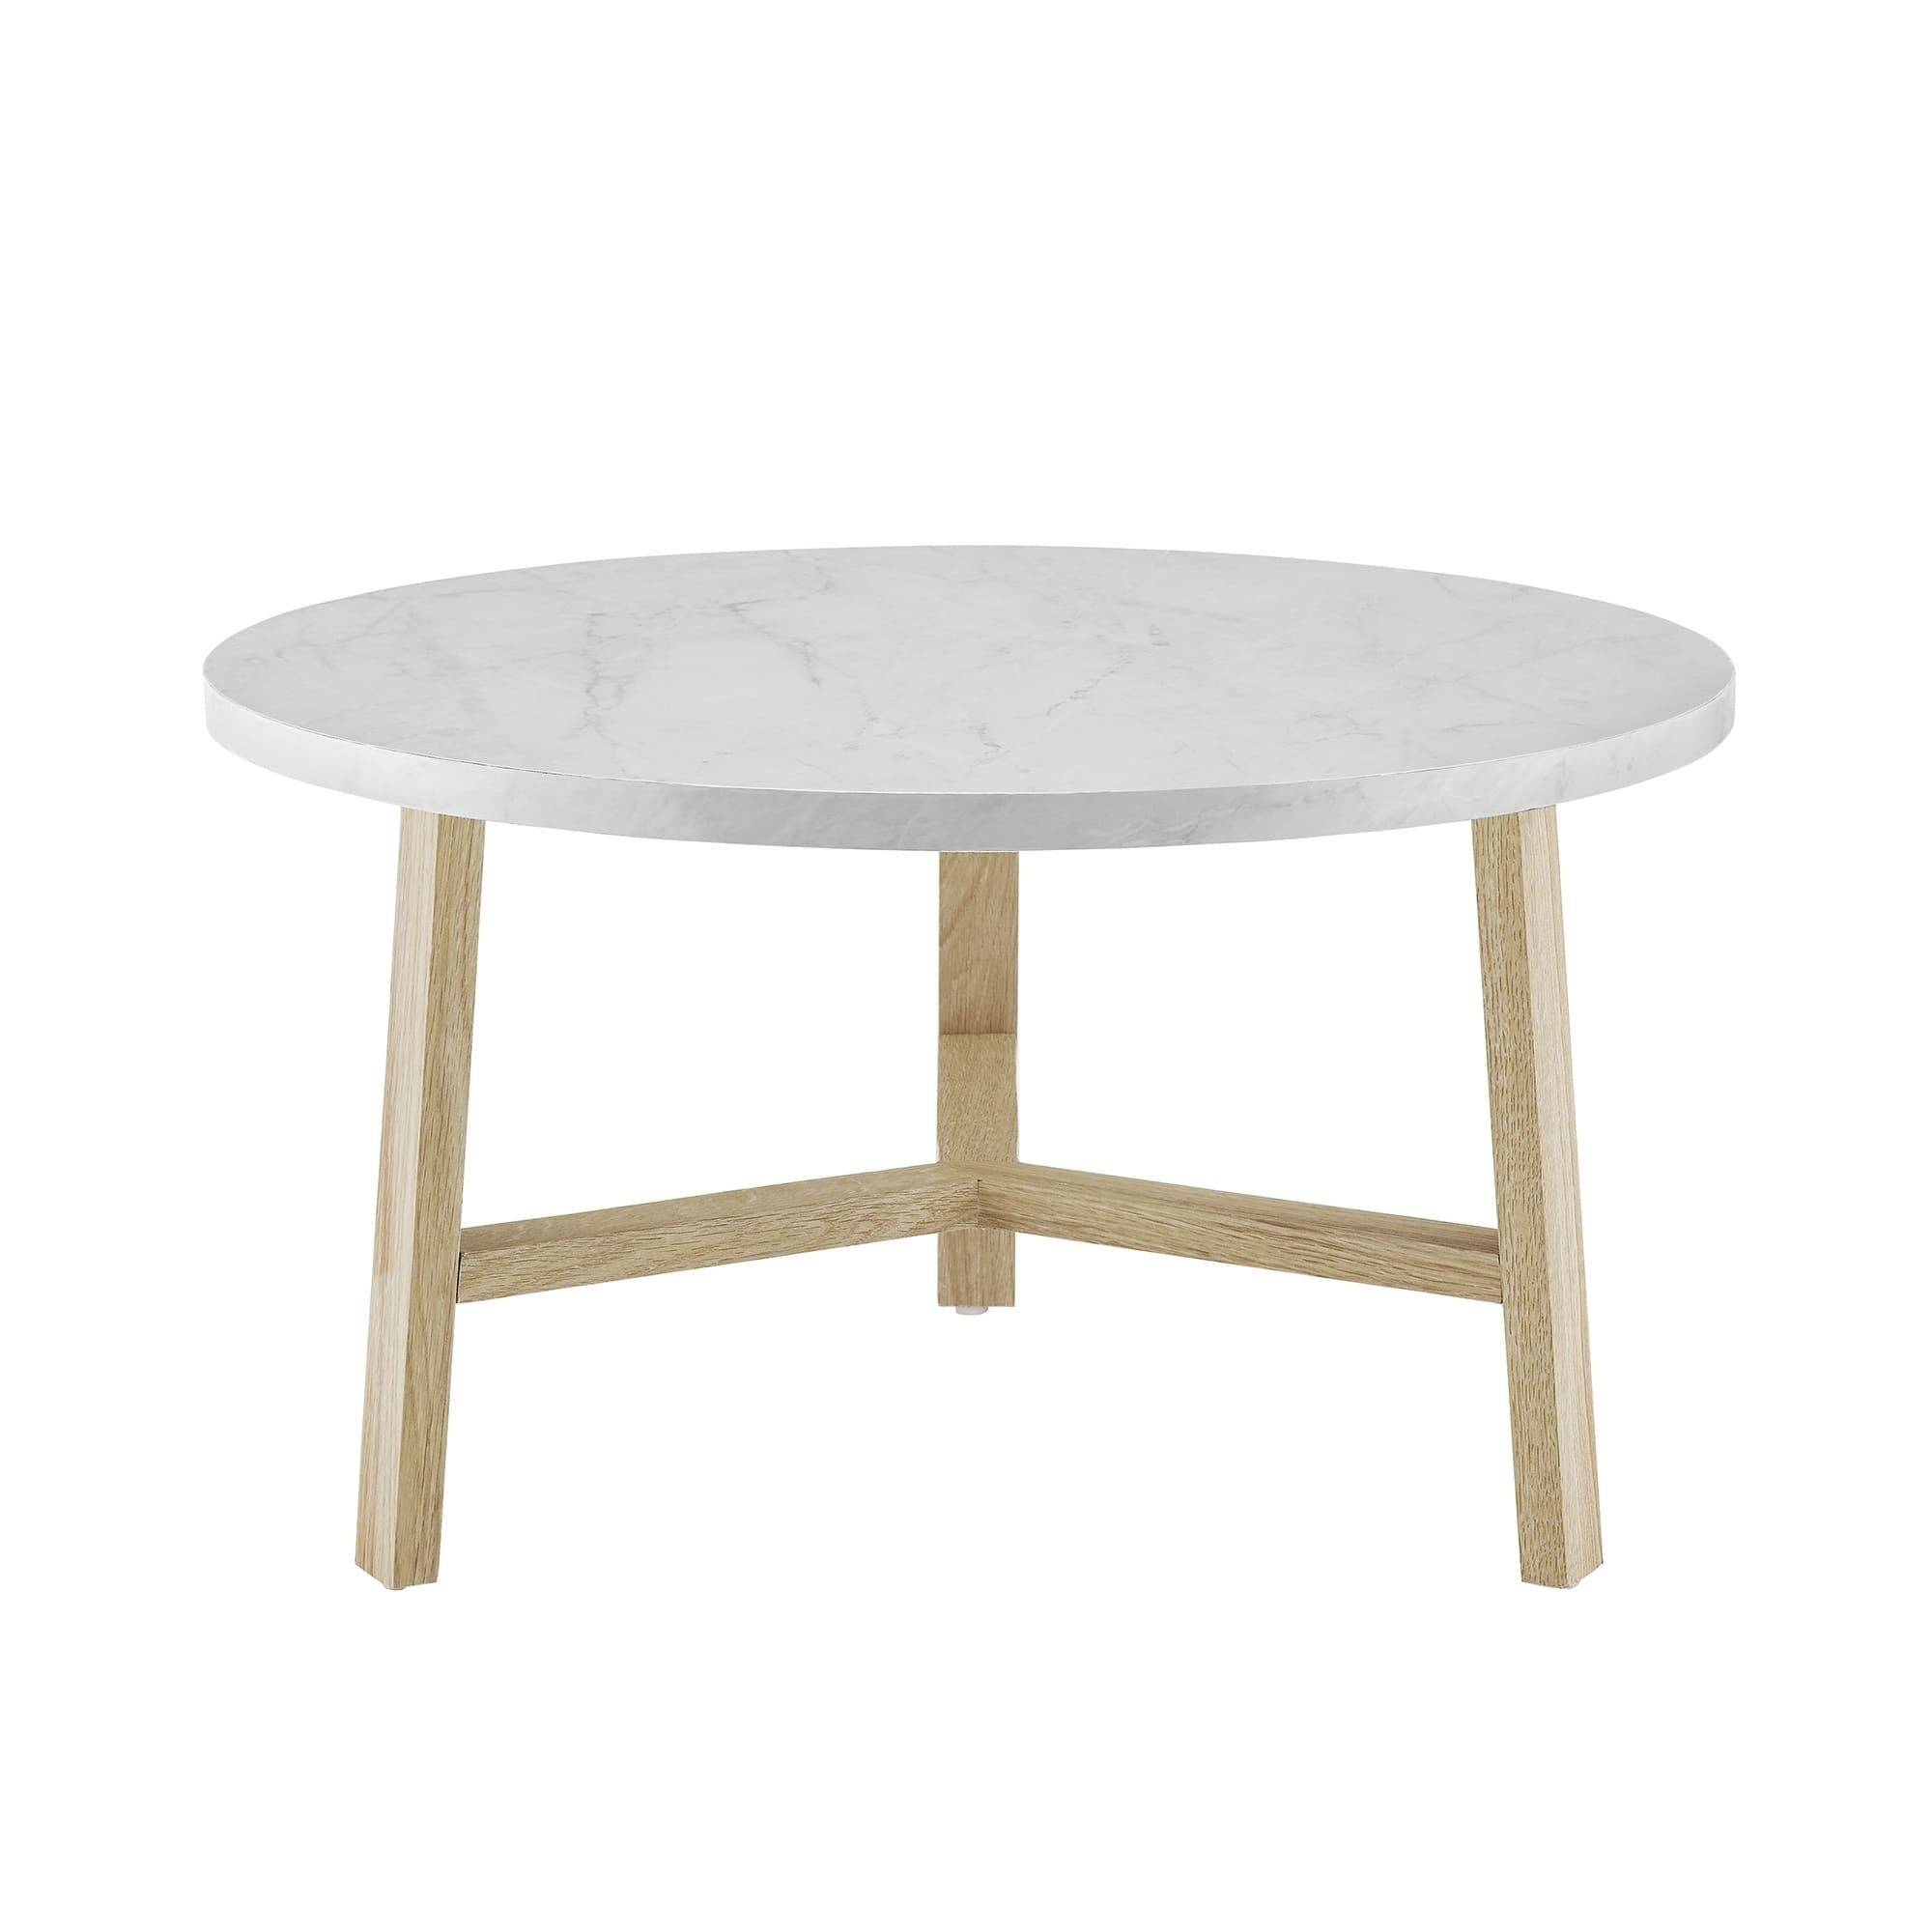 Mid Century Modern Round Coffee Table 30 Inch With Images